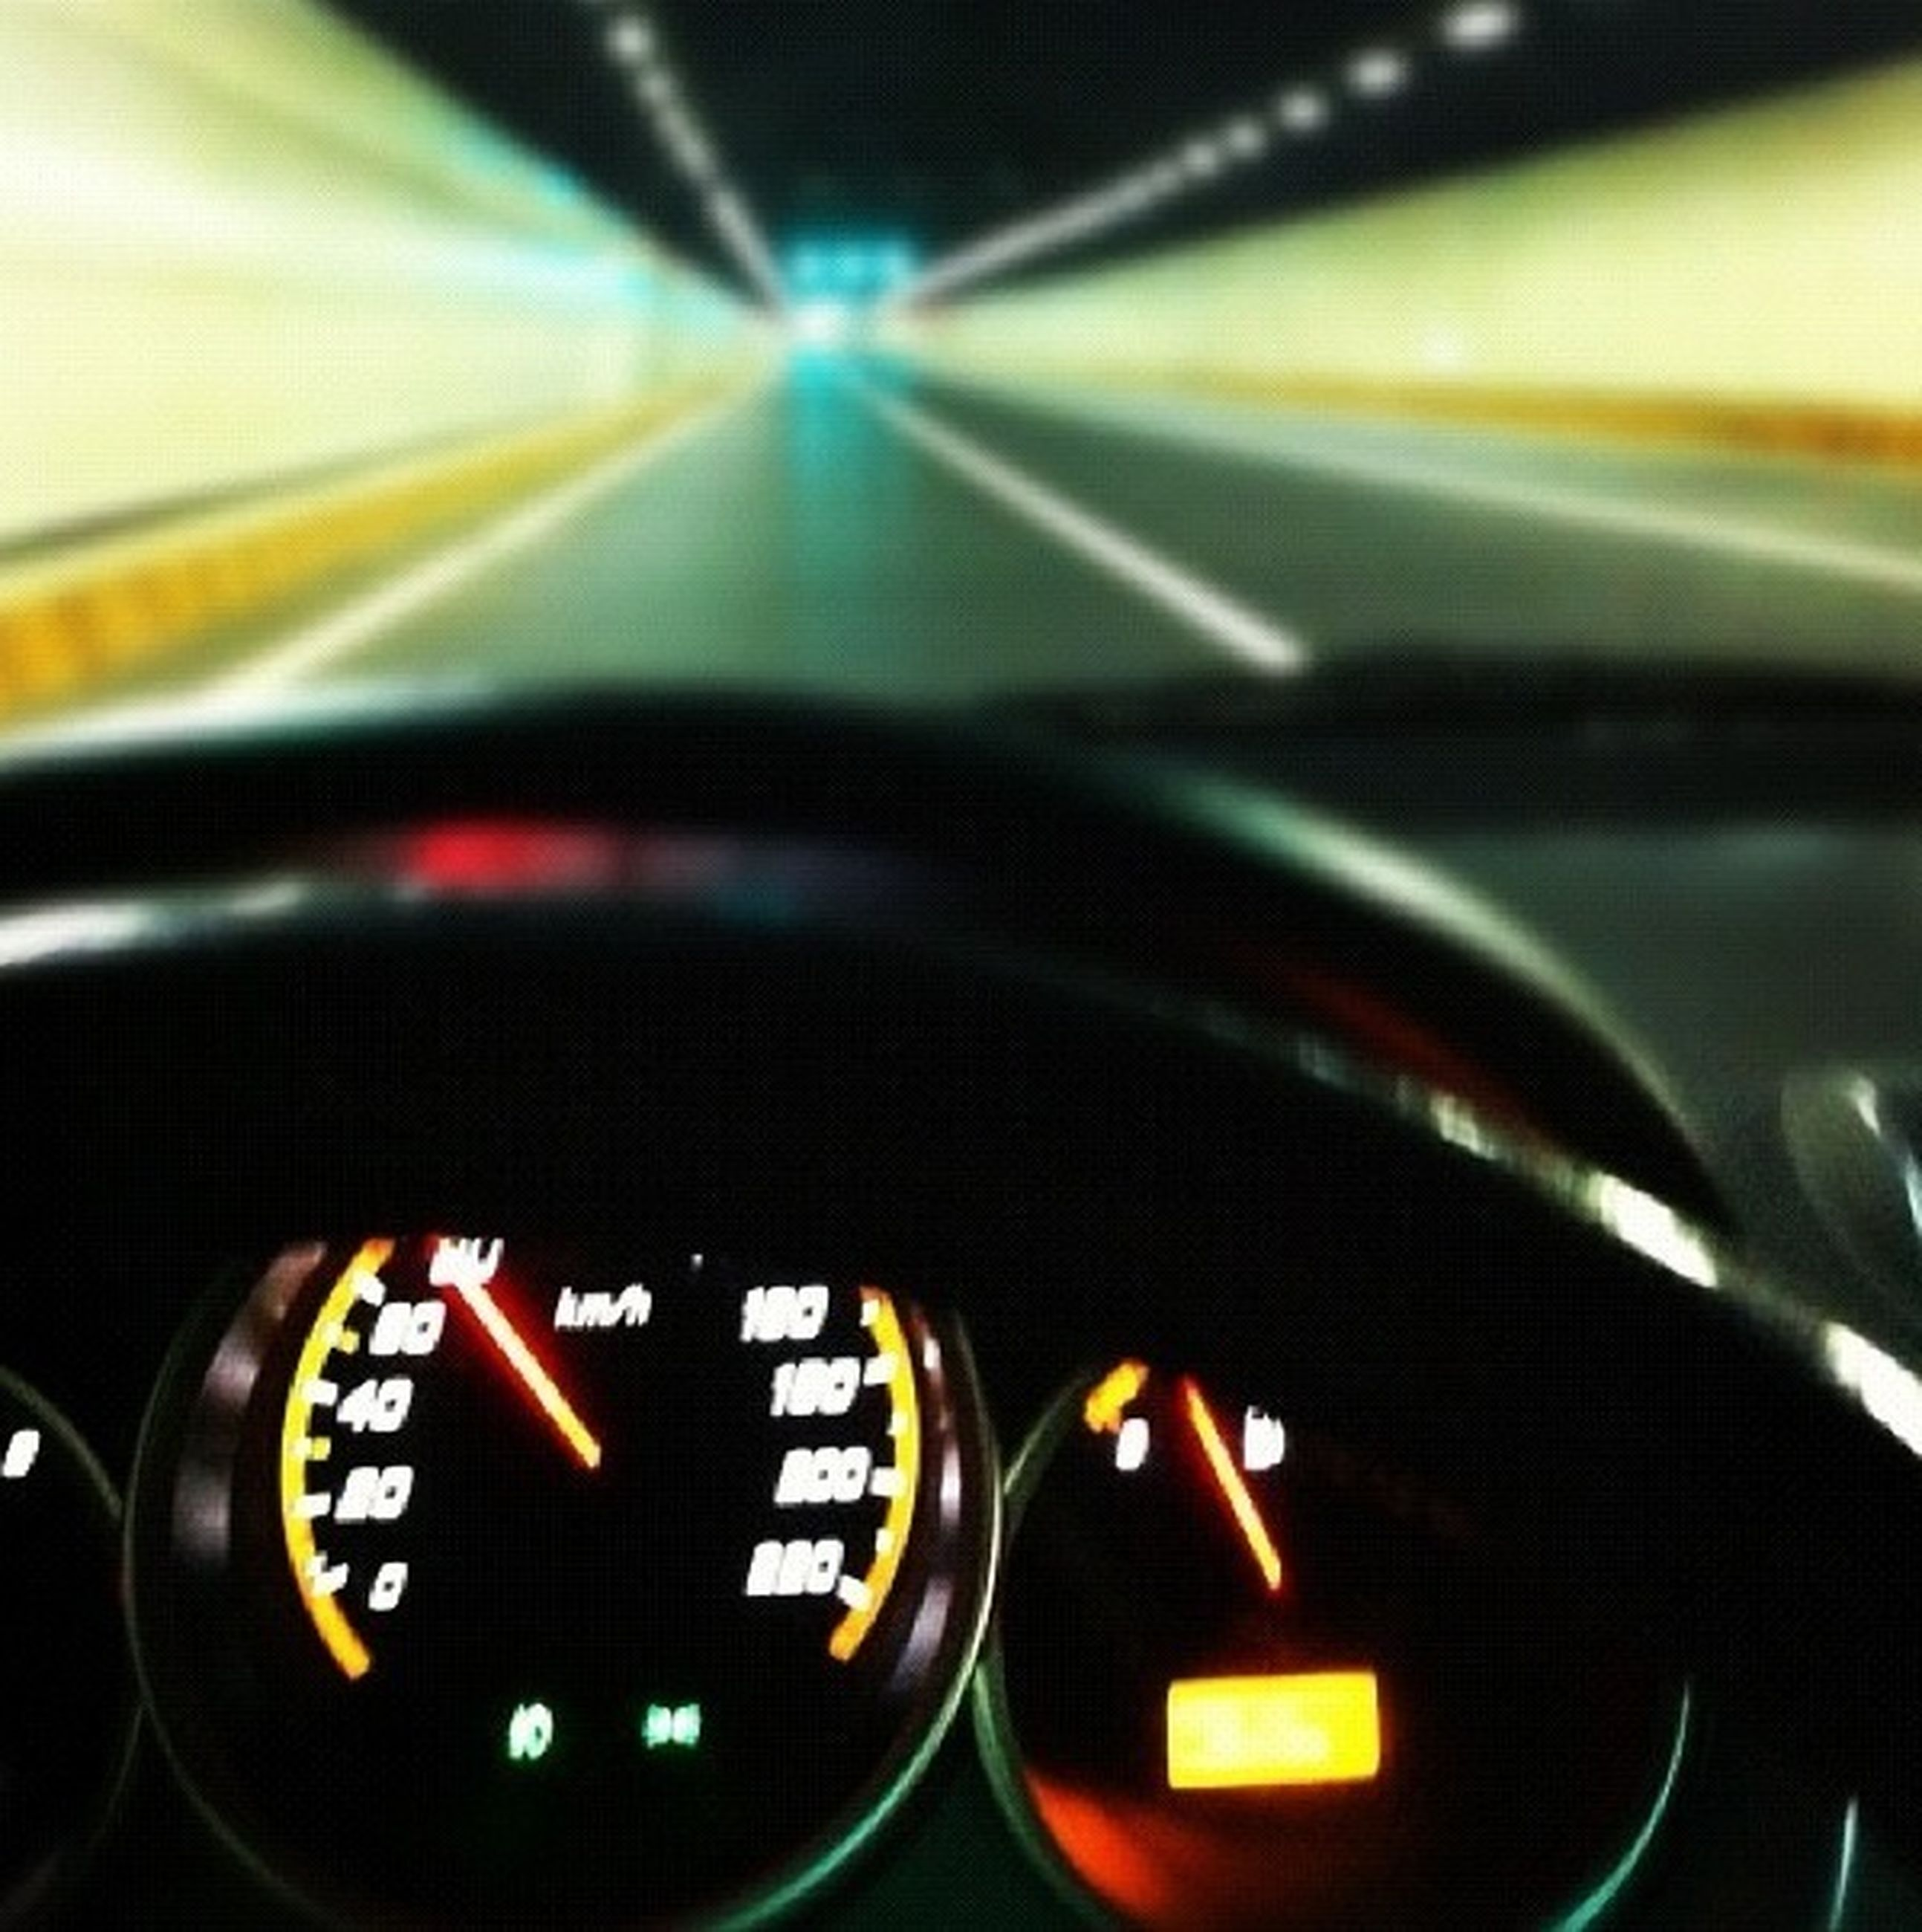 transportation, communication, indoors, technology, mode of transport, number, dashboard, close-up, illuminated, car, land vehicle, speedometer, vehicle interior, text, car interior, travel, part of, control, speed, western script